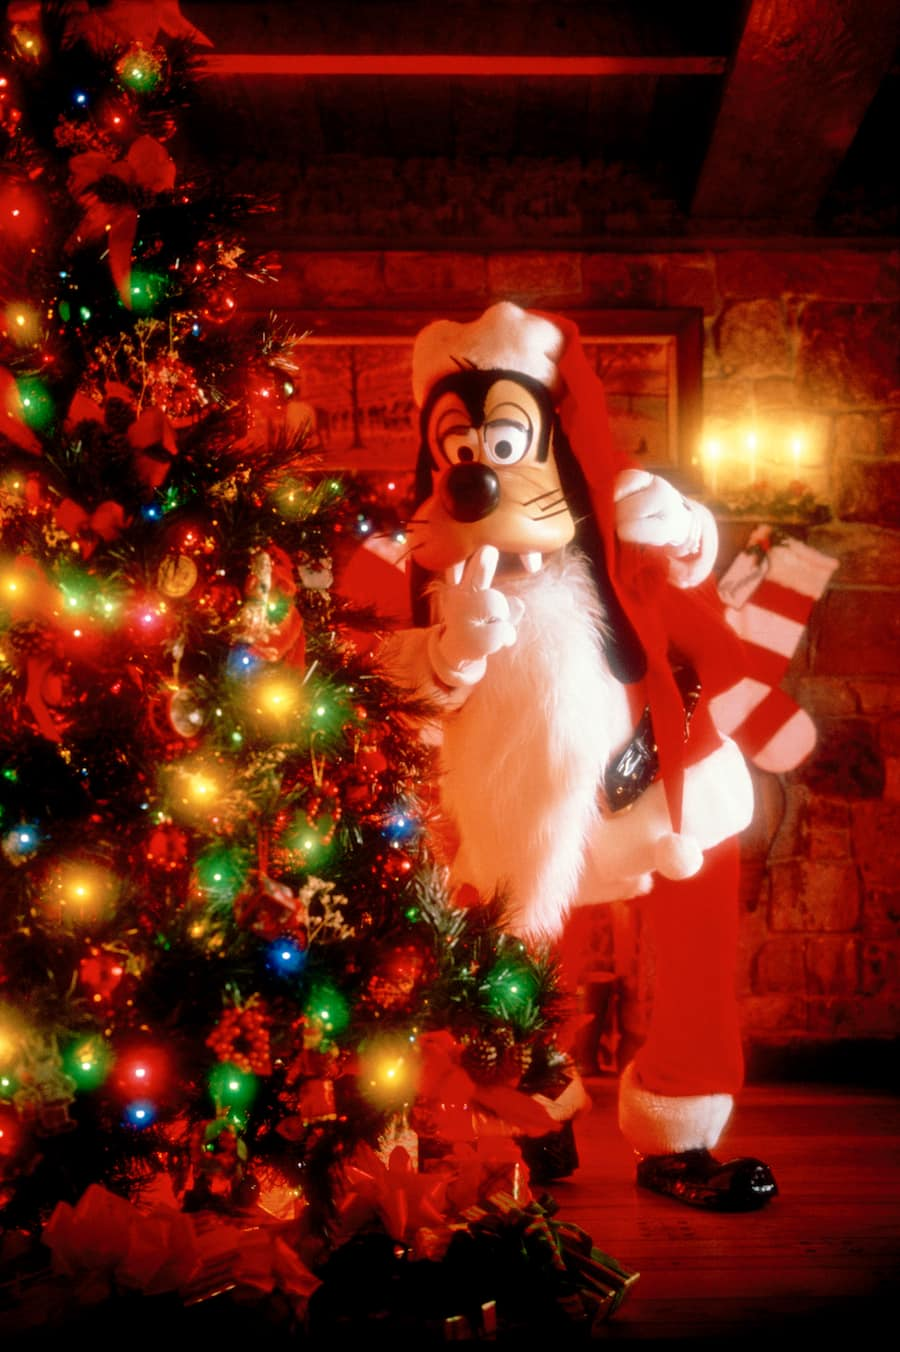 Reservations Now Open for Minnie's Holiday Dine at Hollywood & Vine